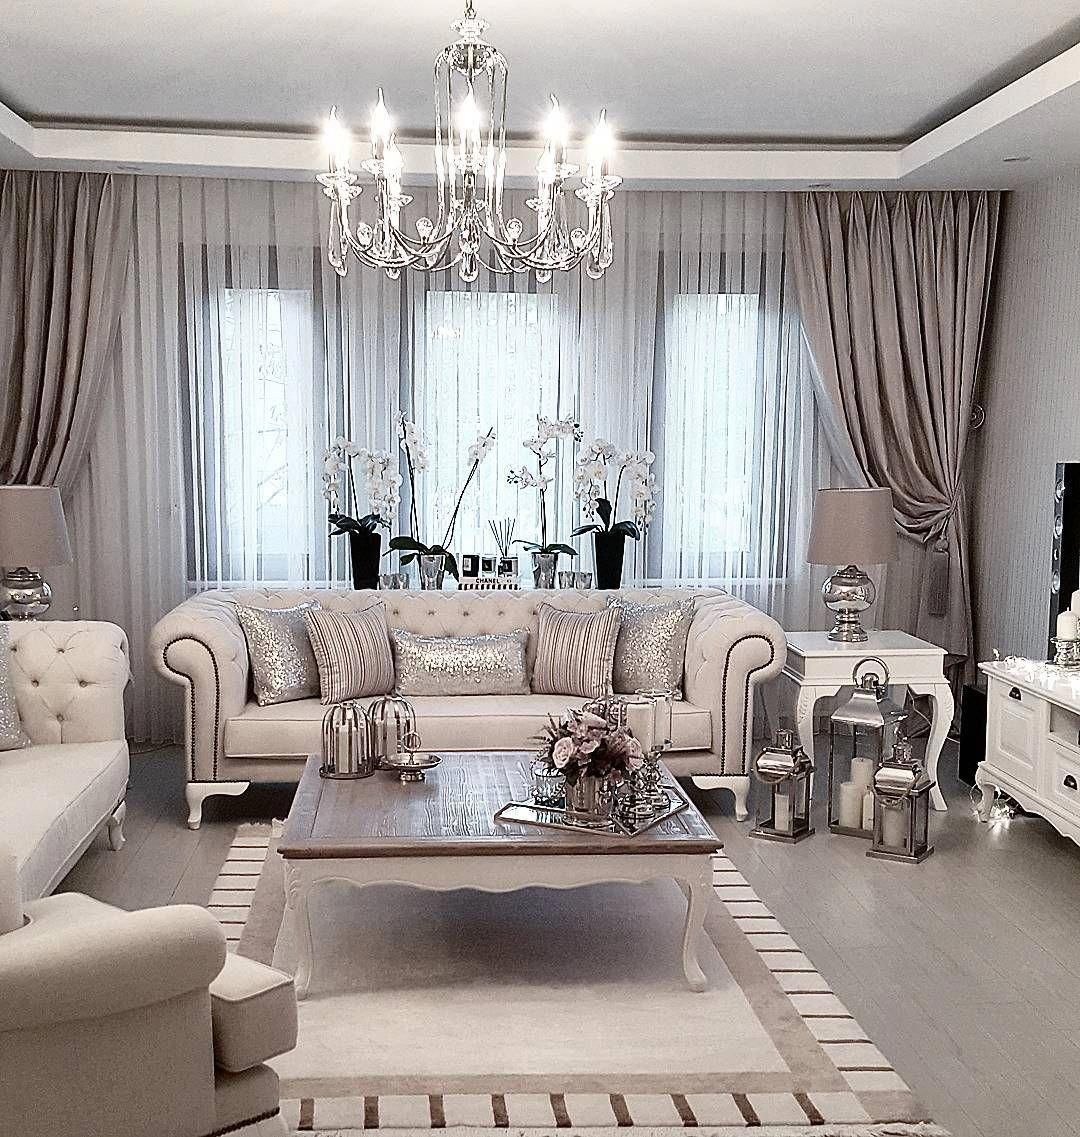 Kardashian badezimmer dekor pin by ari on dream house in   pinterest  home decor